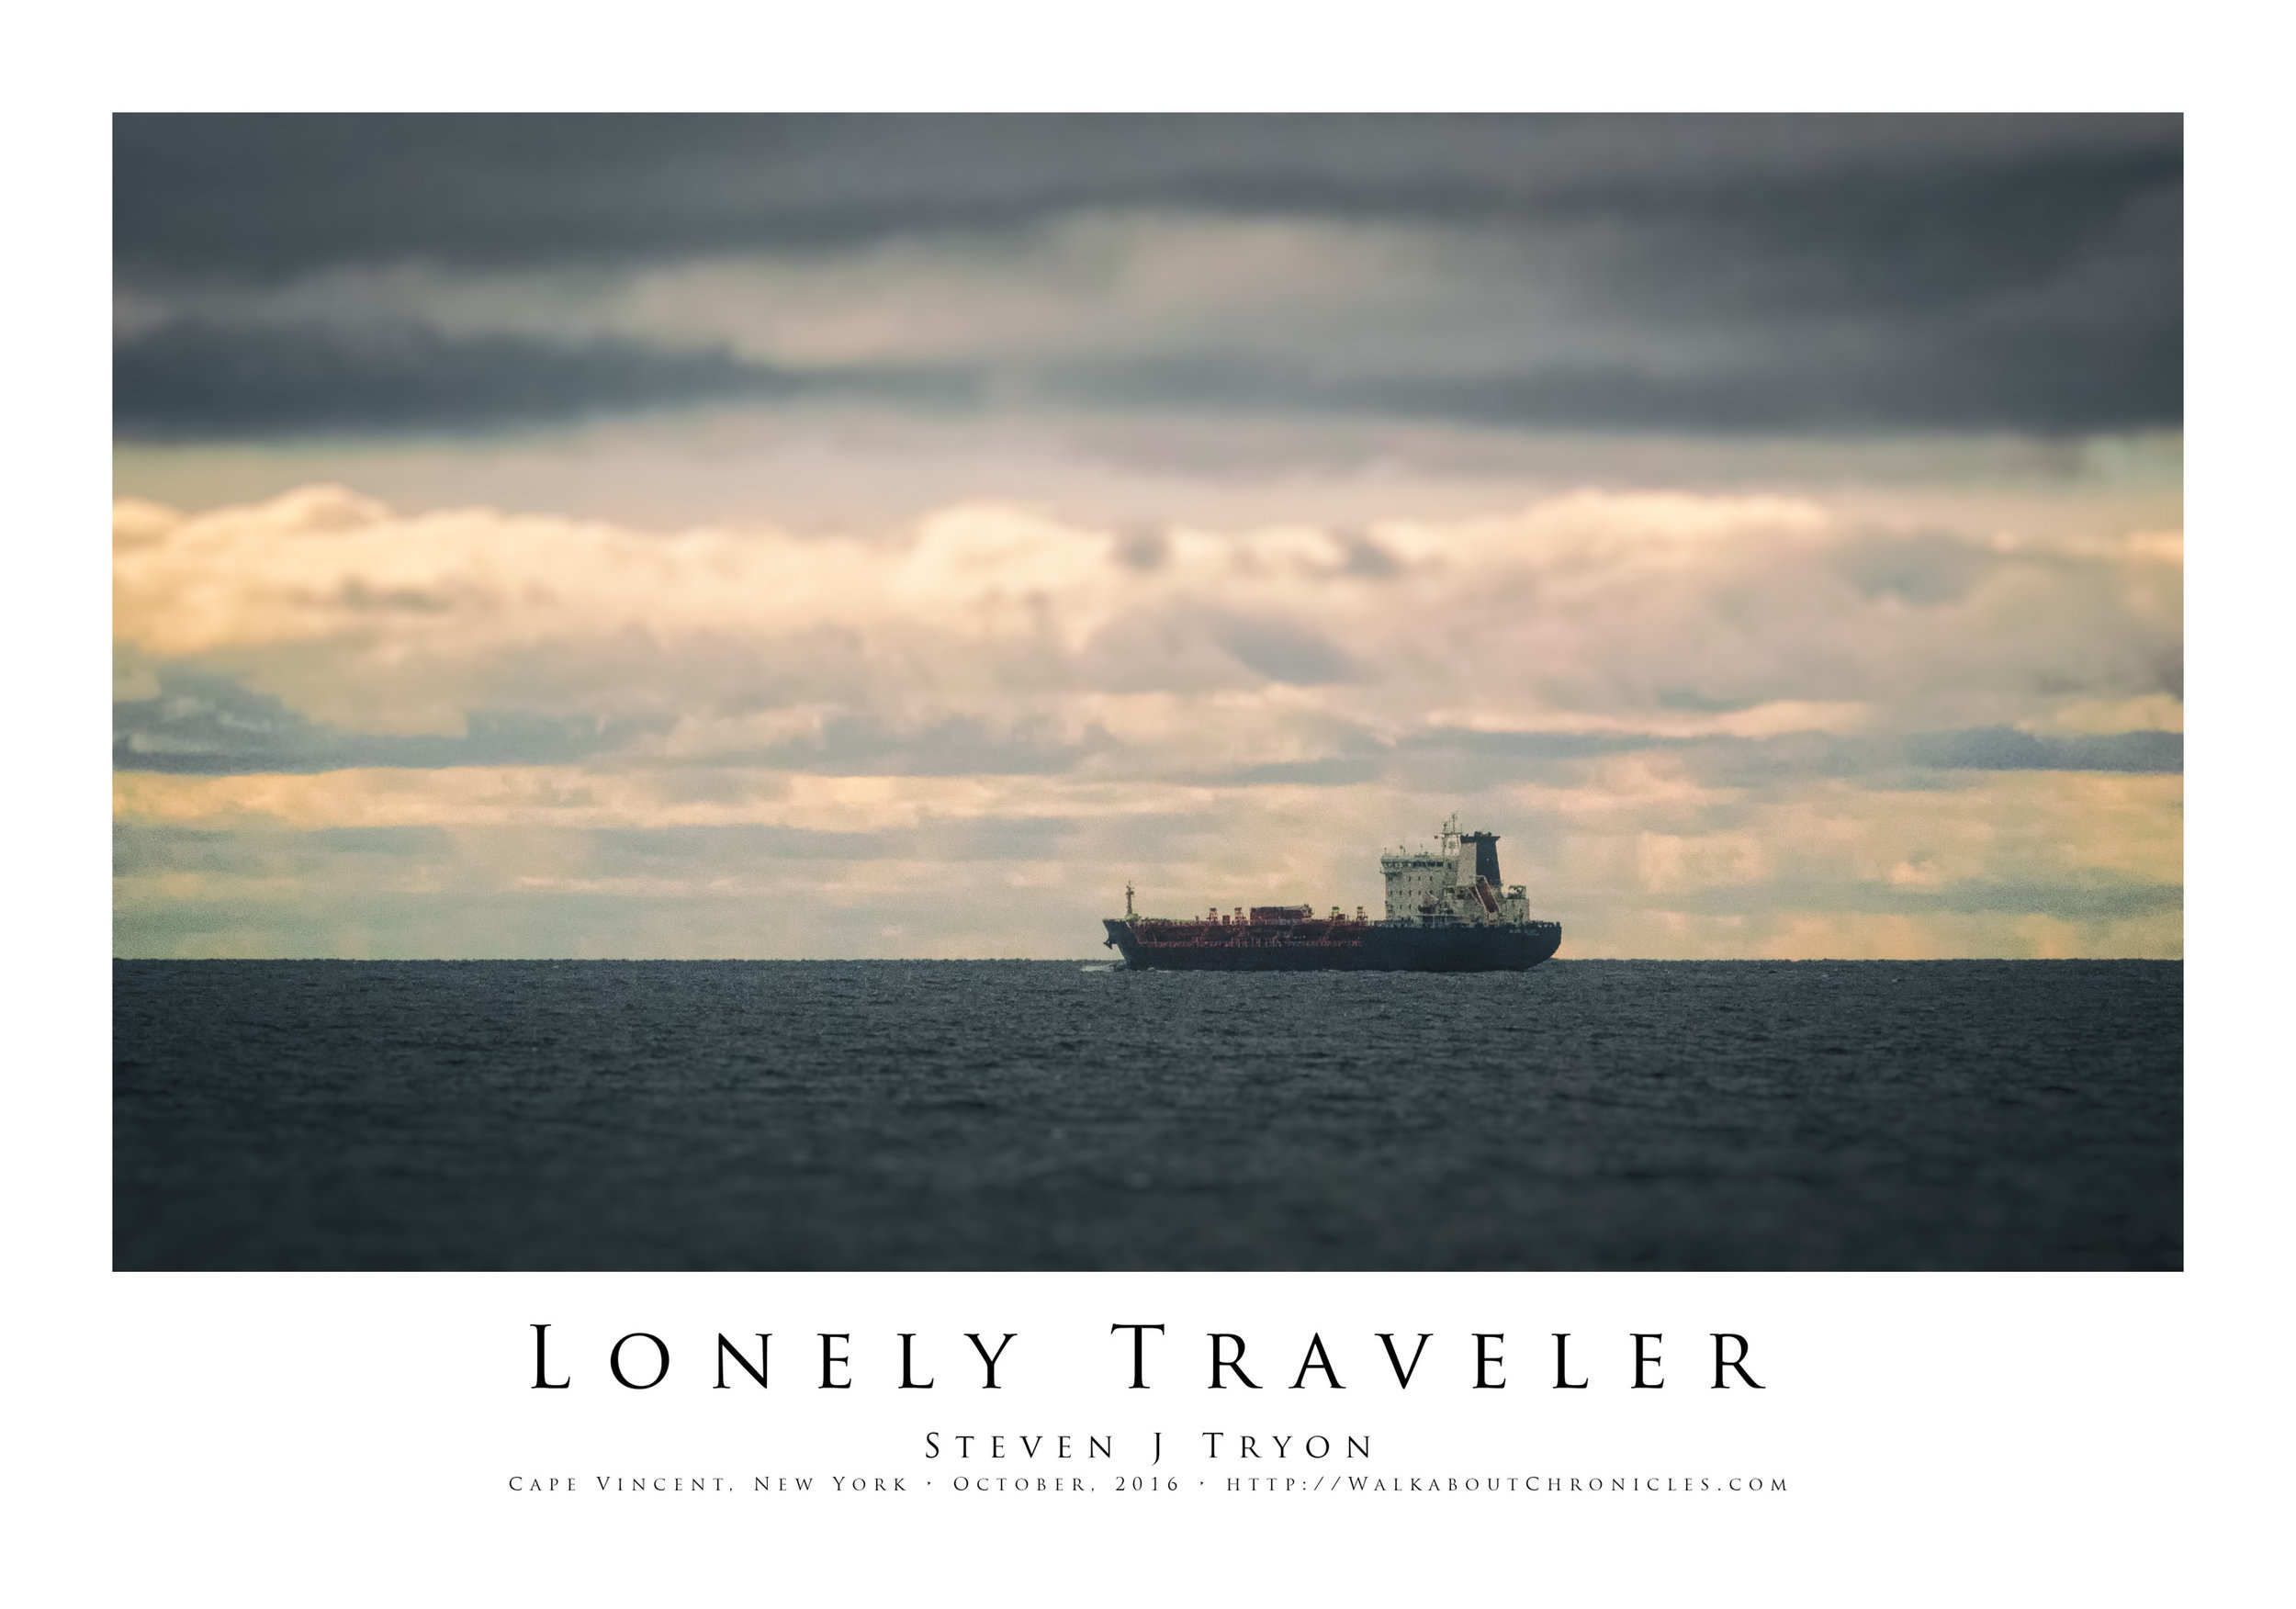 Lonely Traveler